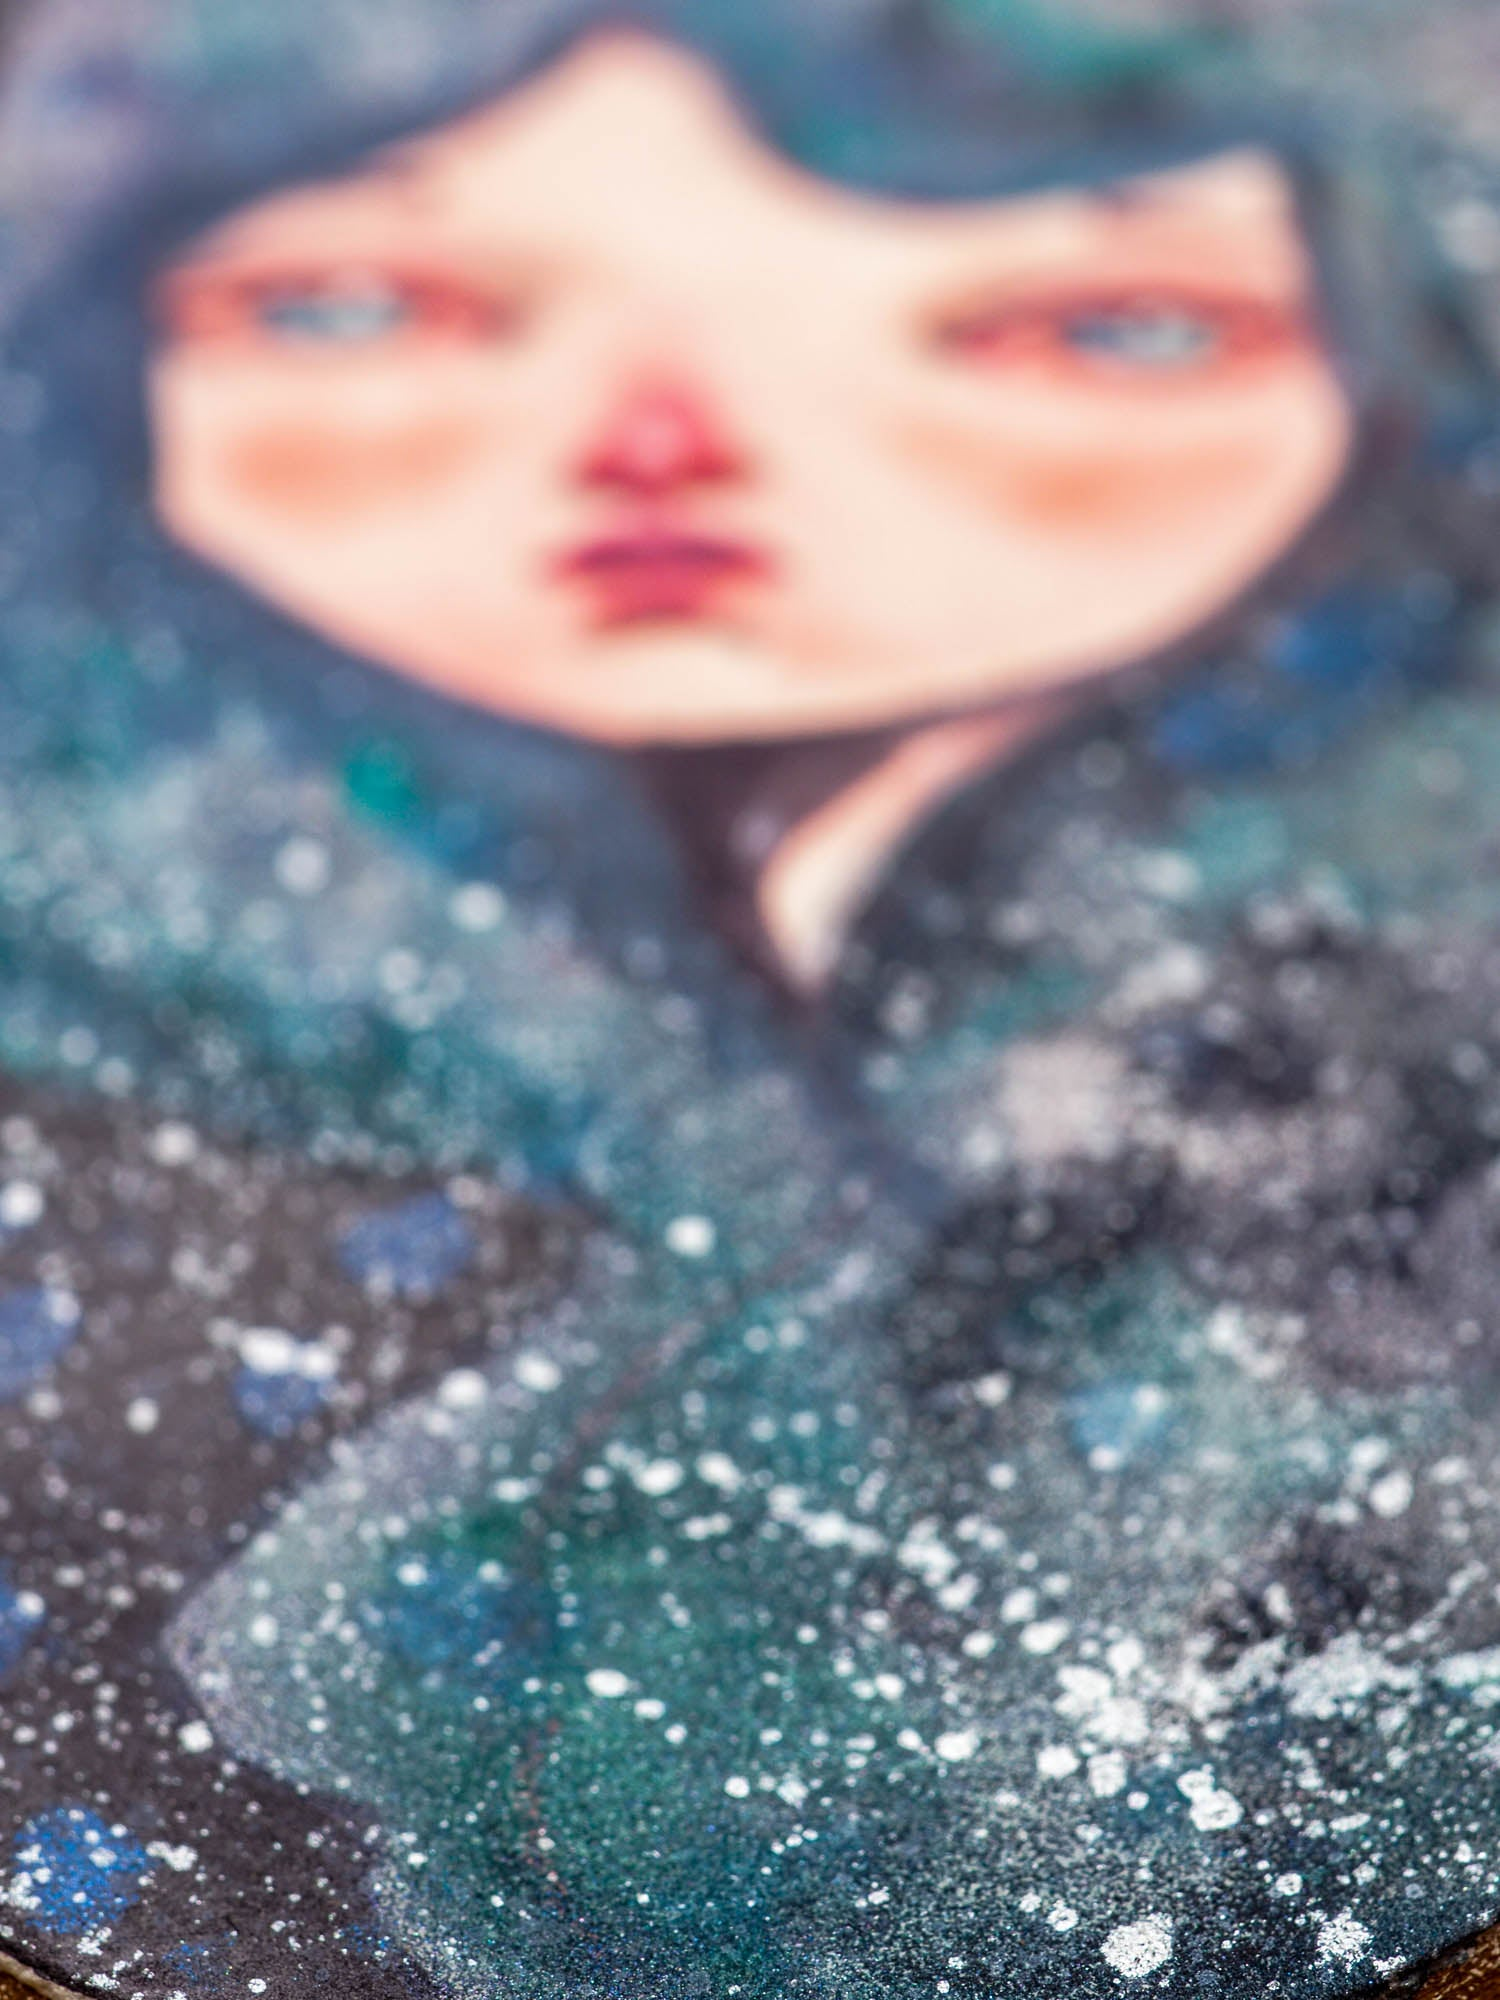 ANDROMEDA - One of Danita's deep space inspired watercolor portraits, Original Art by Danita Art